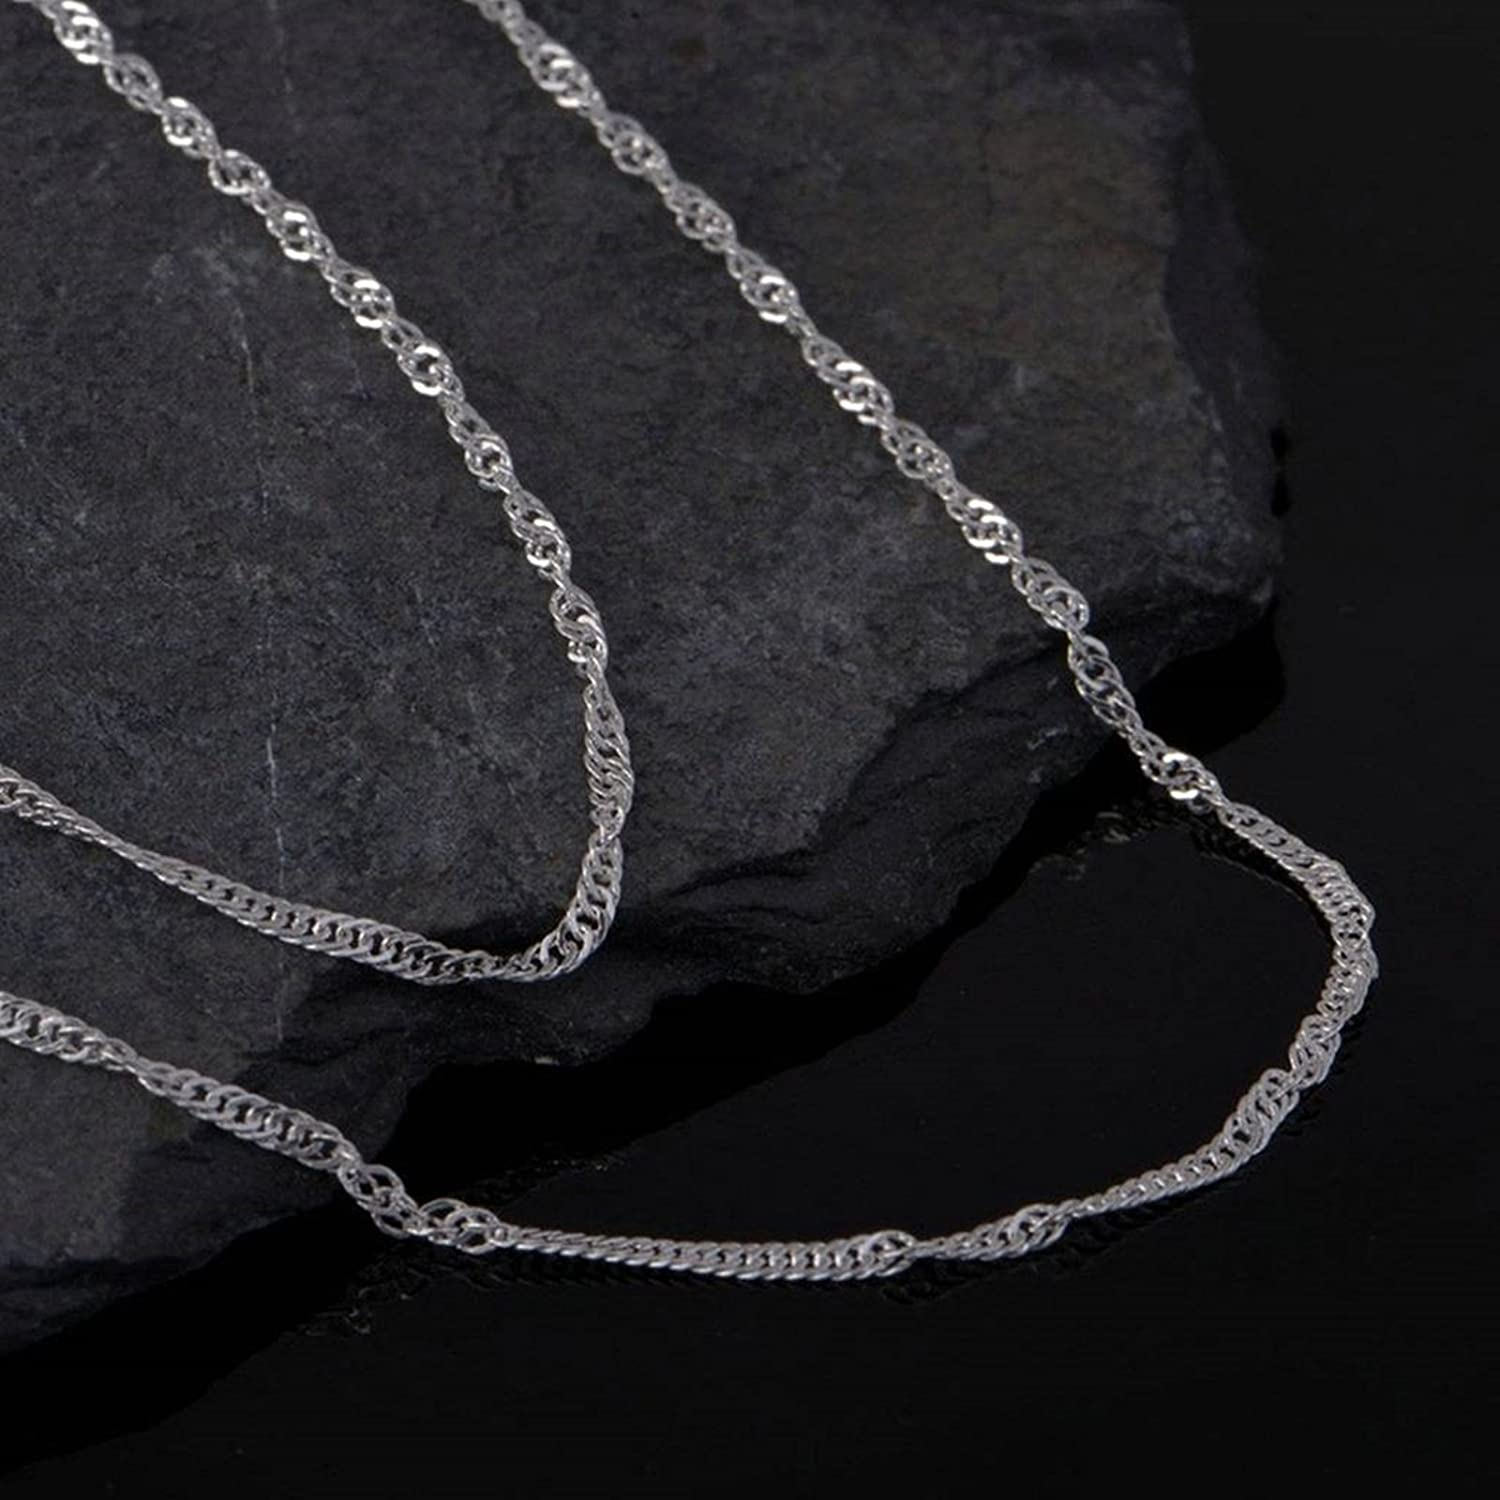 Aokarry Chain Necklace for Pendant Silver Water Wave Chain Necklace for Women 20 Inches